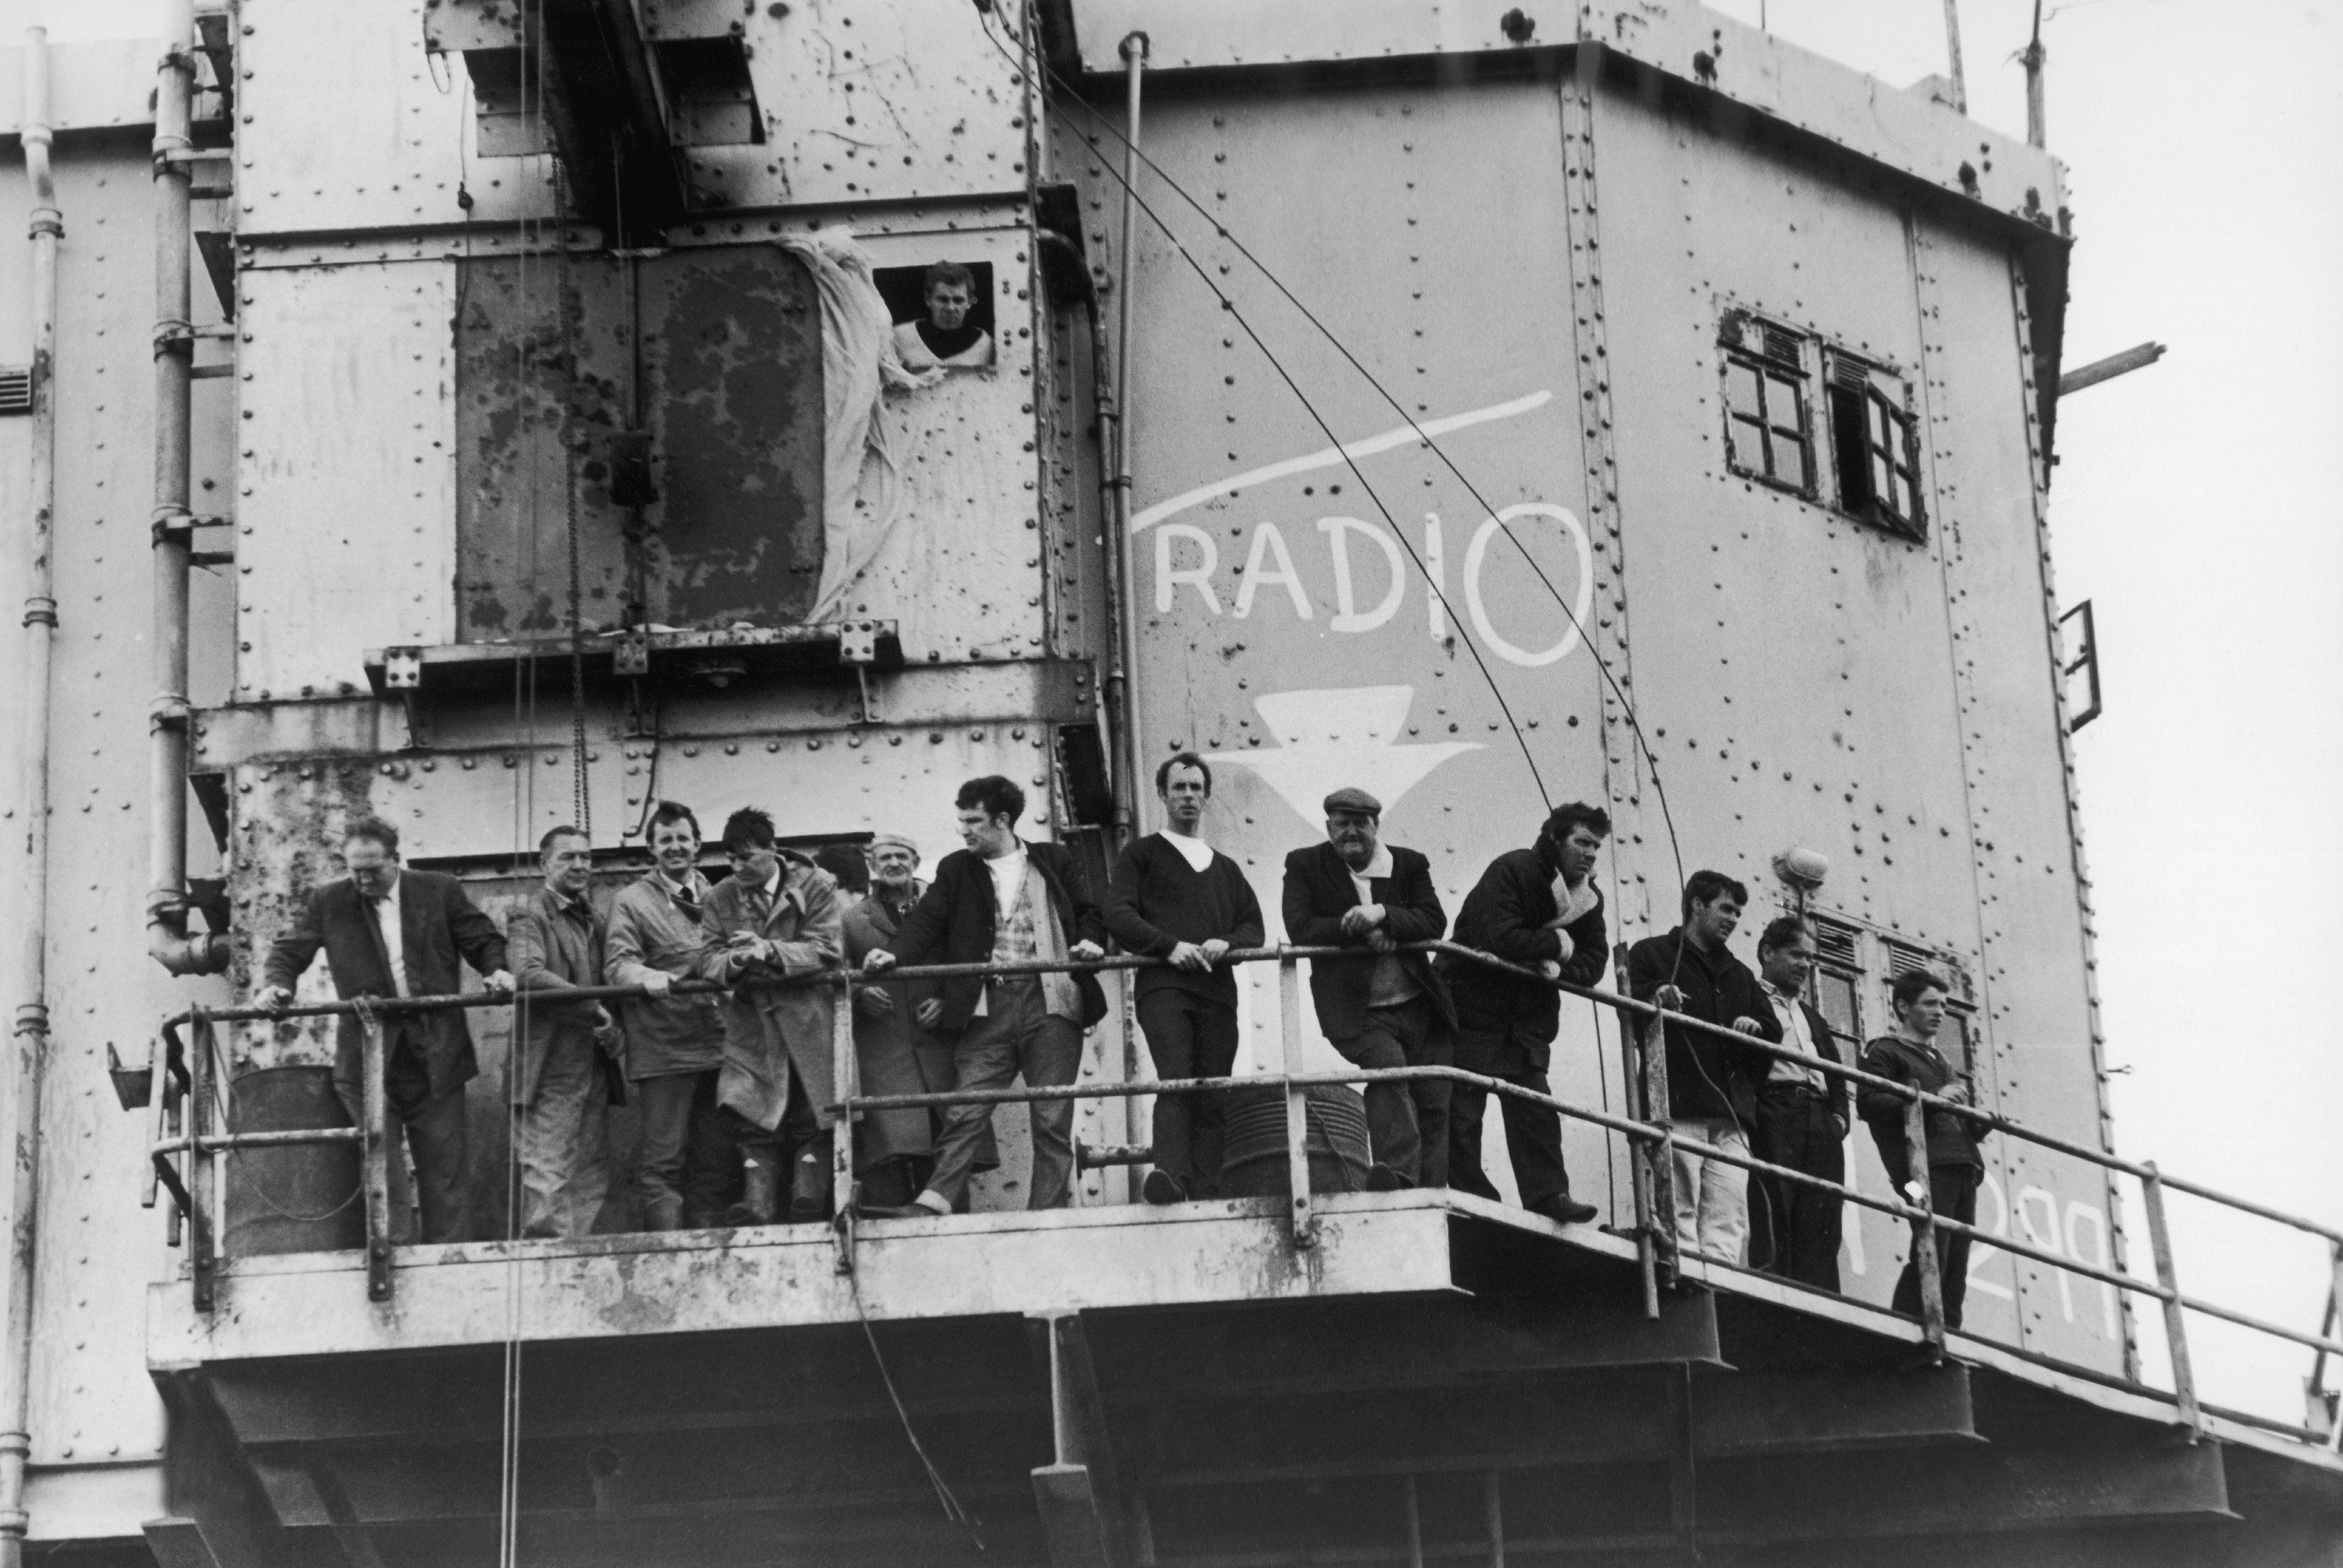 Police boarded Radio City at Shivering Sands after Reg Calvert was shot dead.